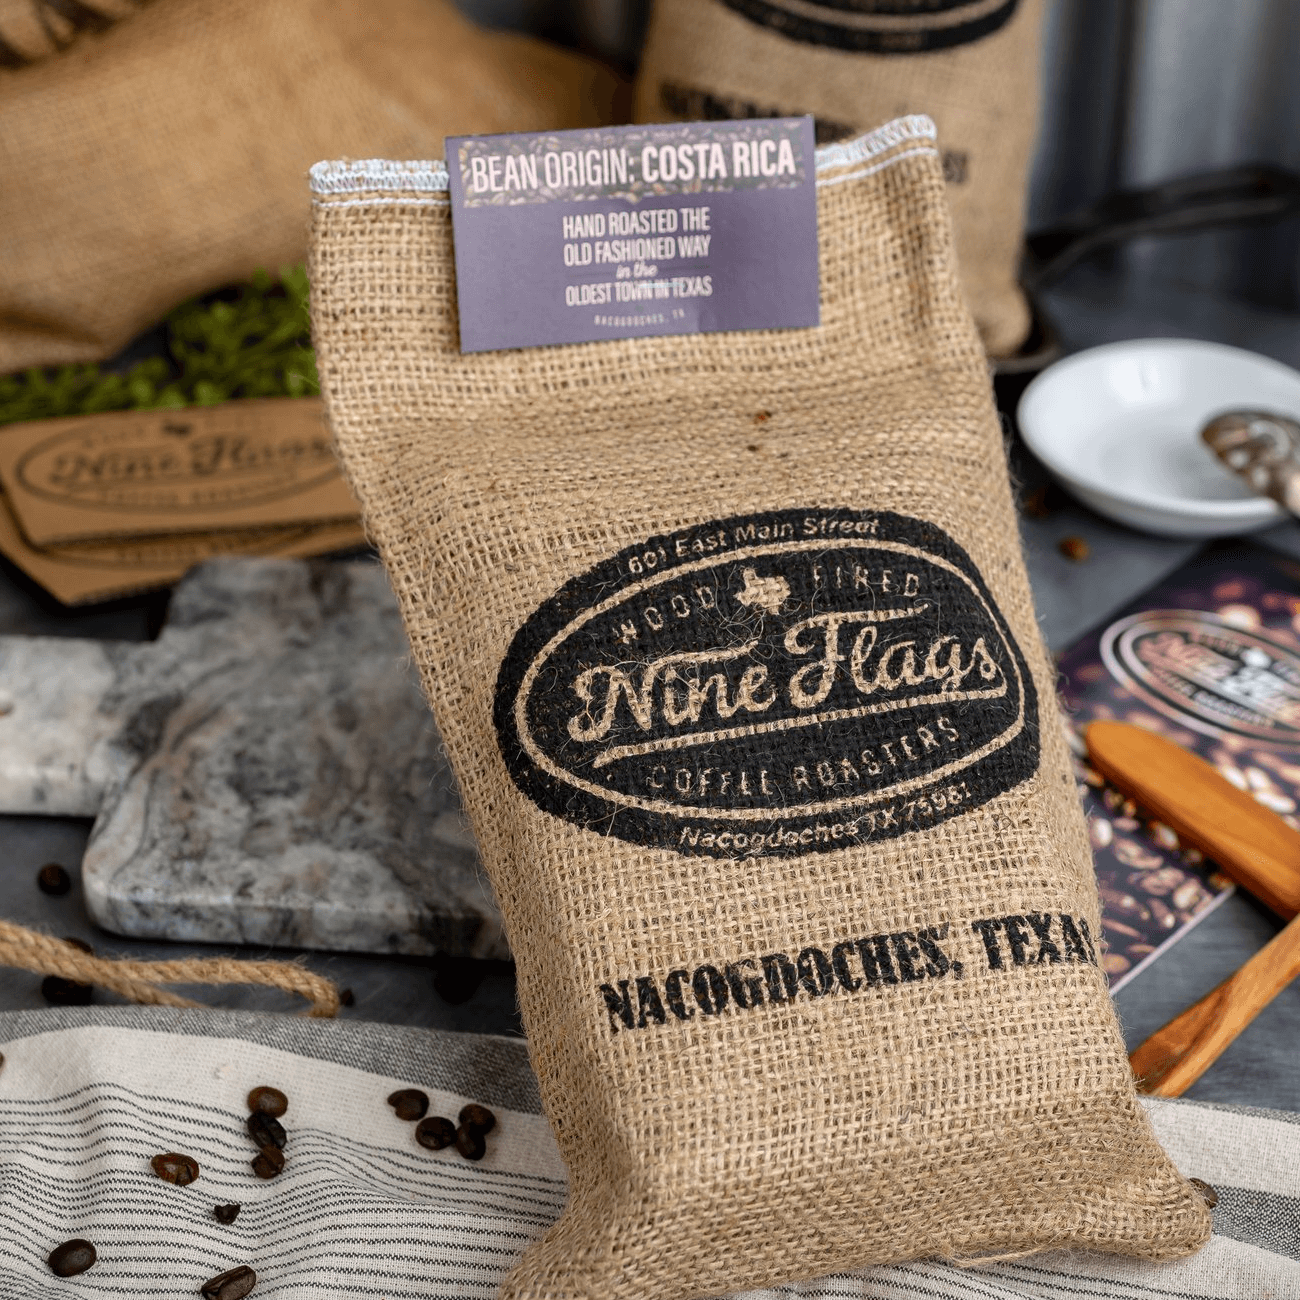 Costa Rica from Nine Flags Coffee Roasters